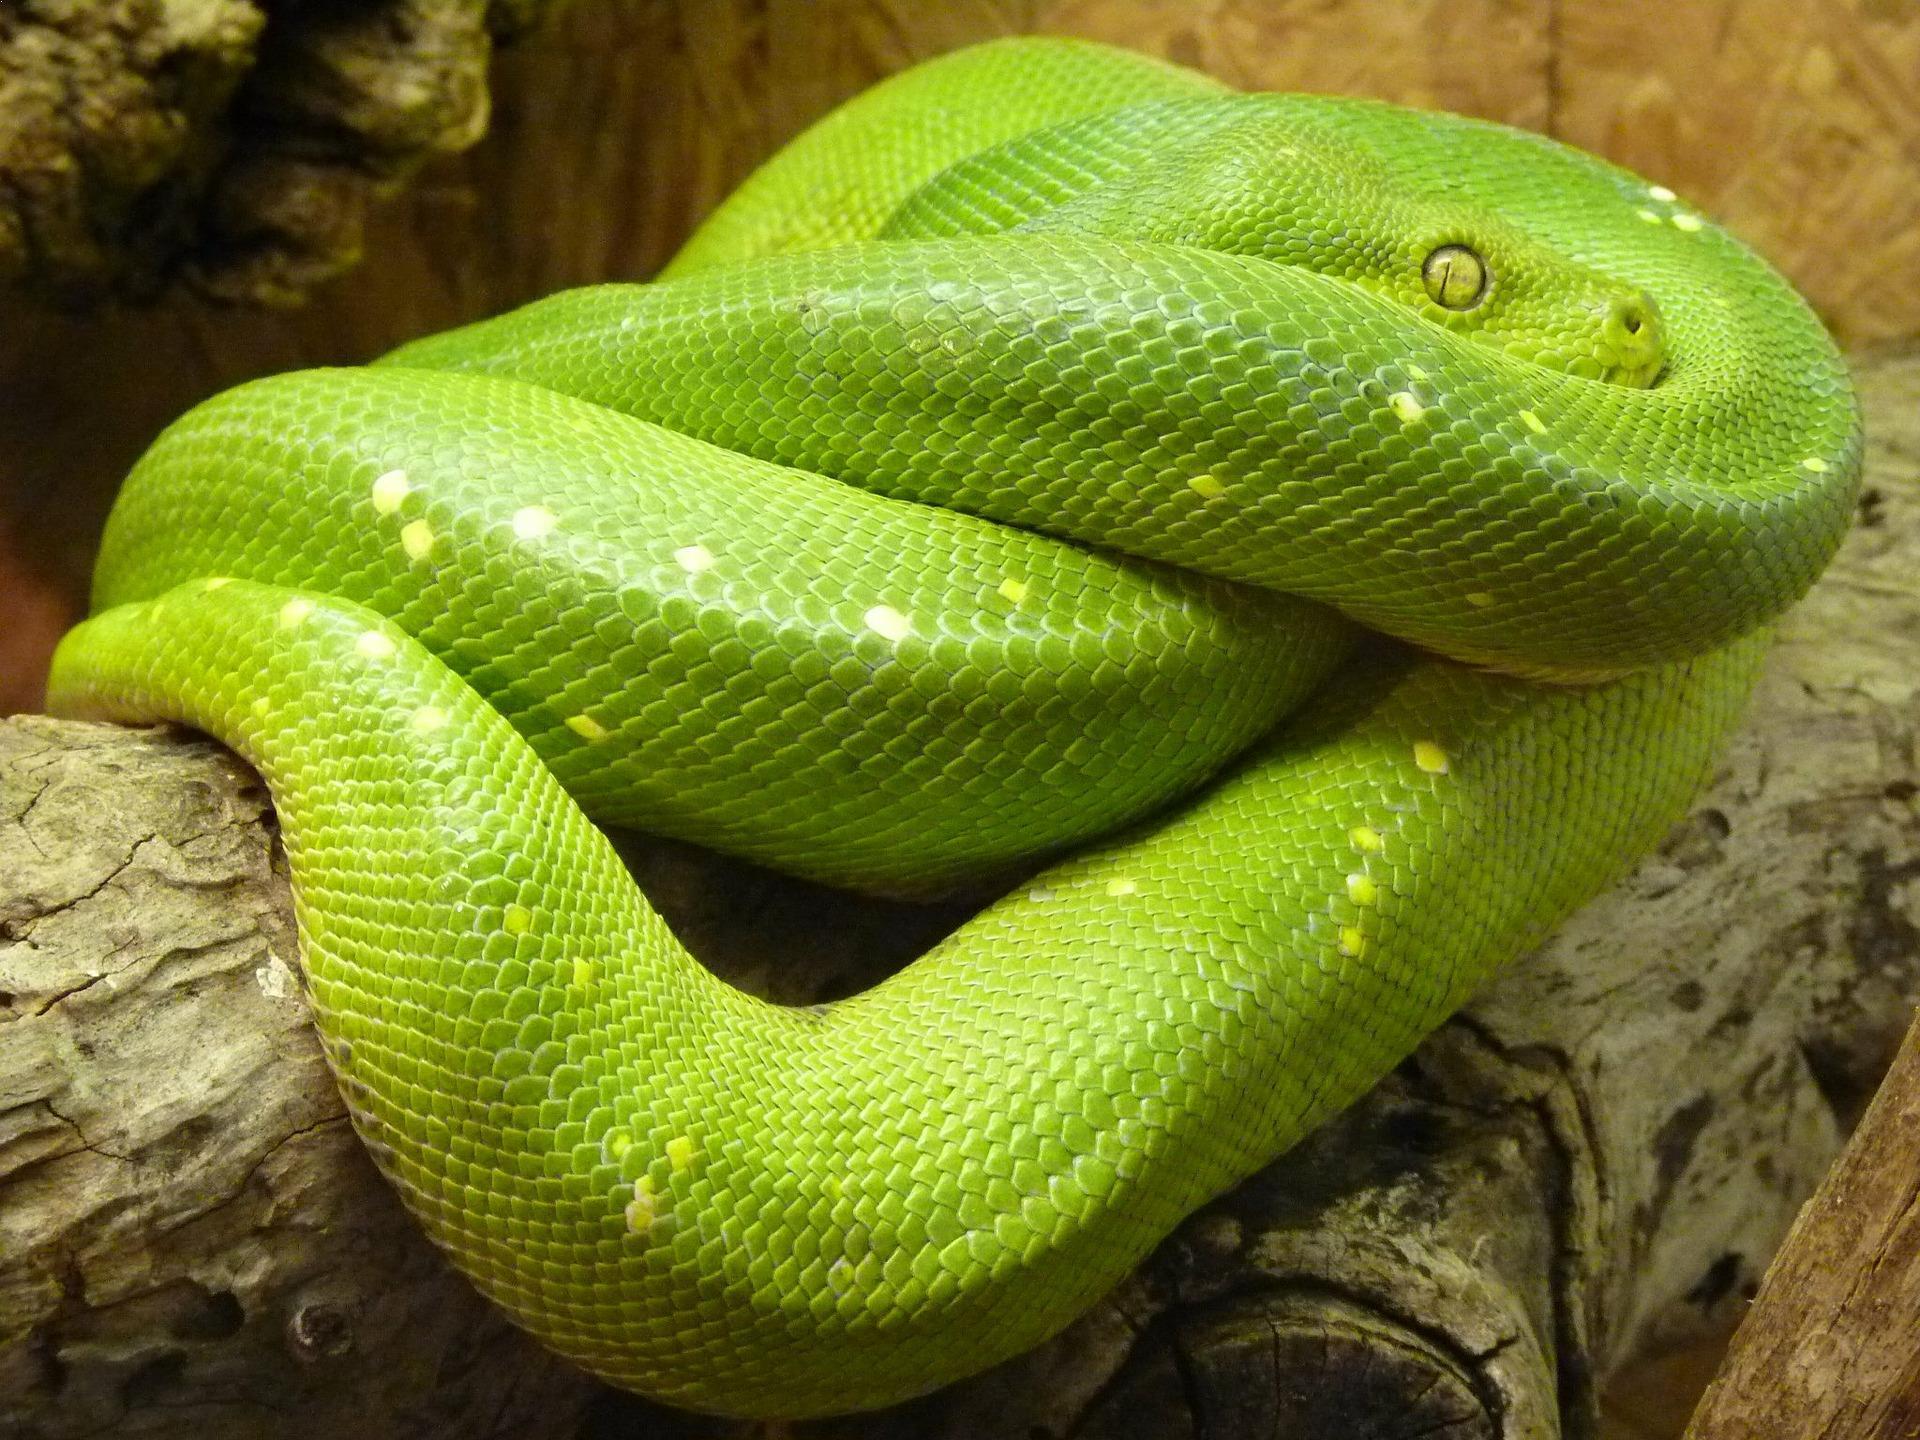 Top 10 Non-Venomous Snakes In The World